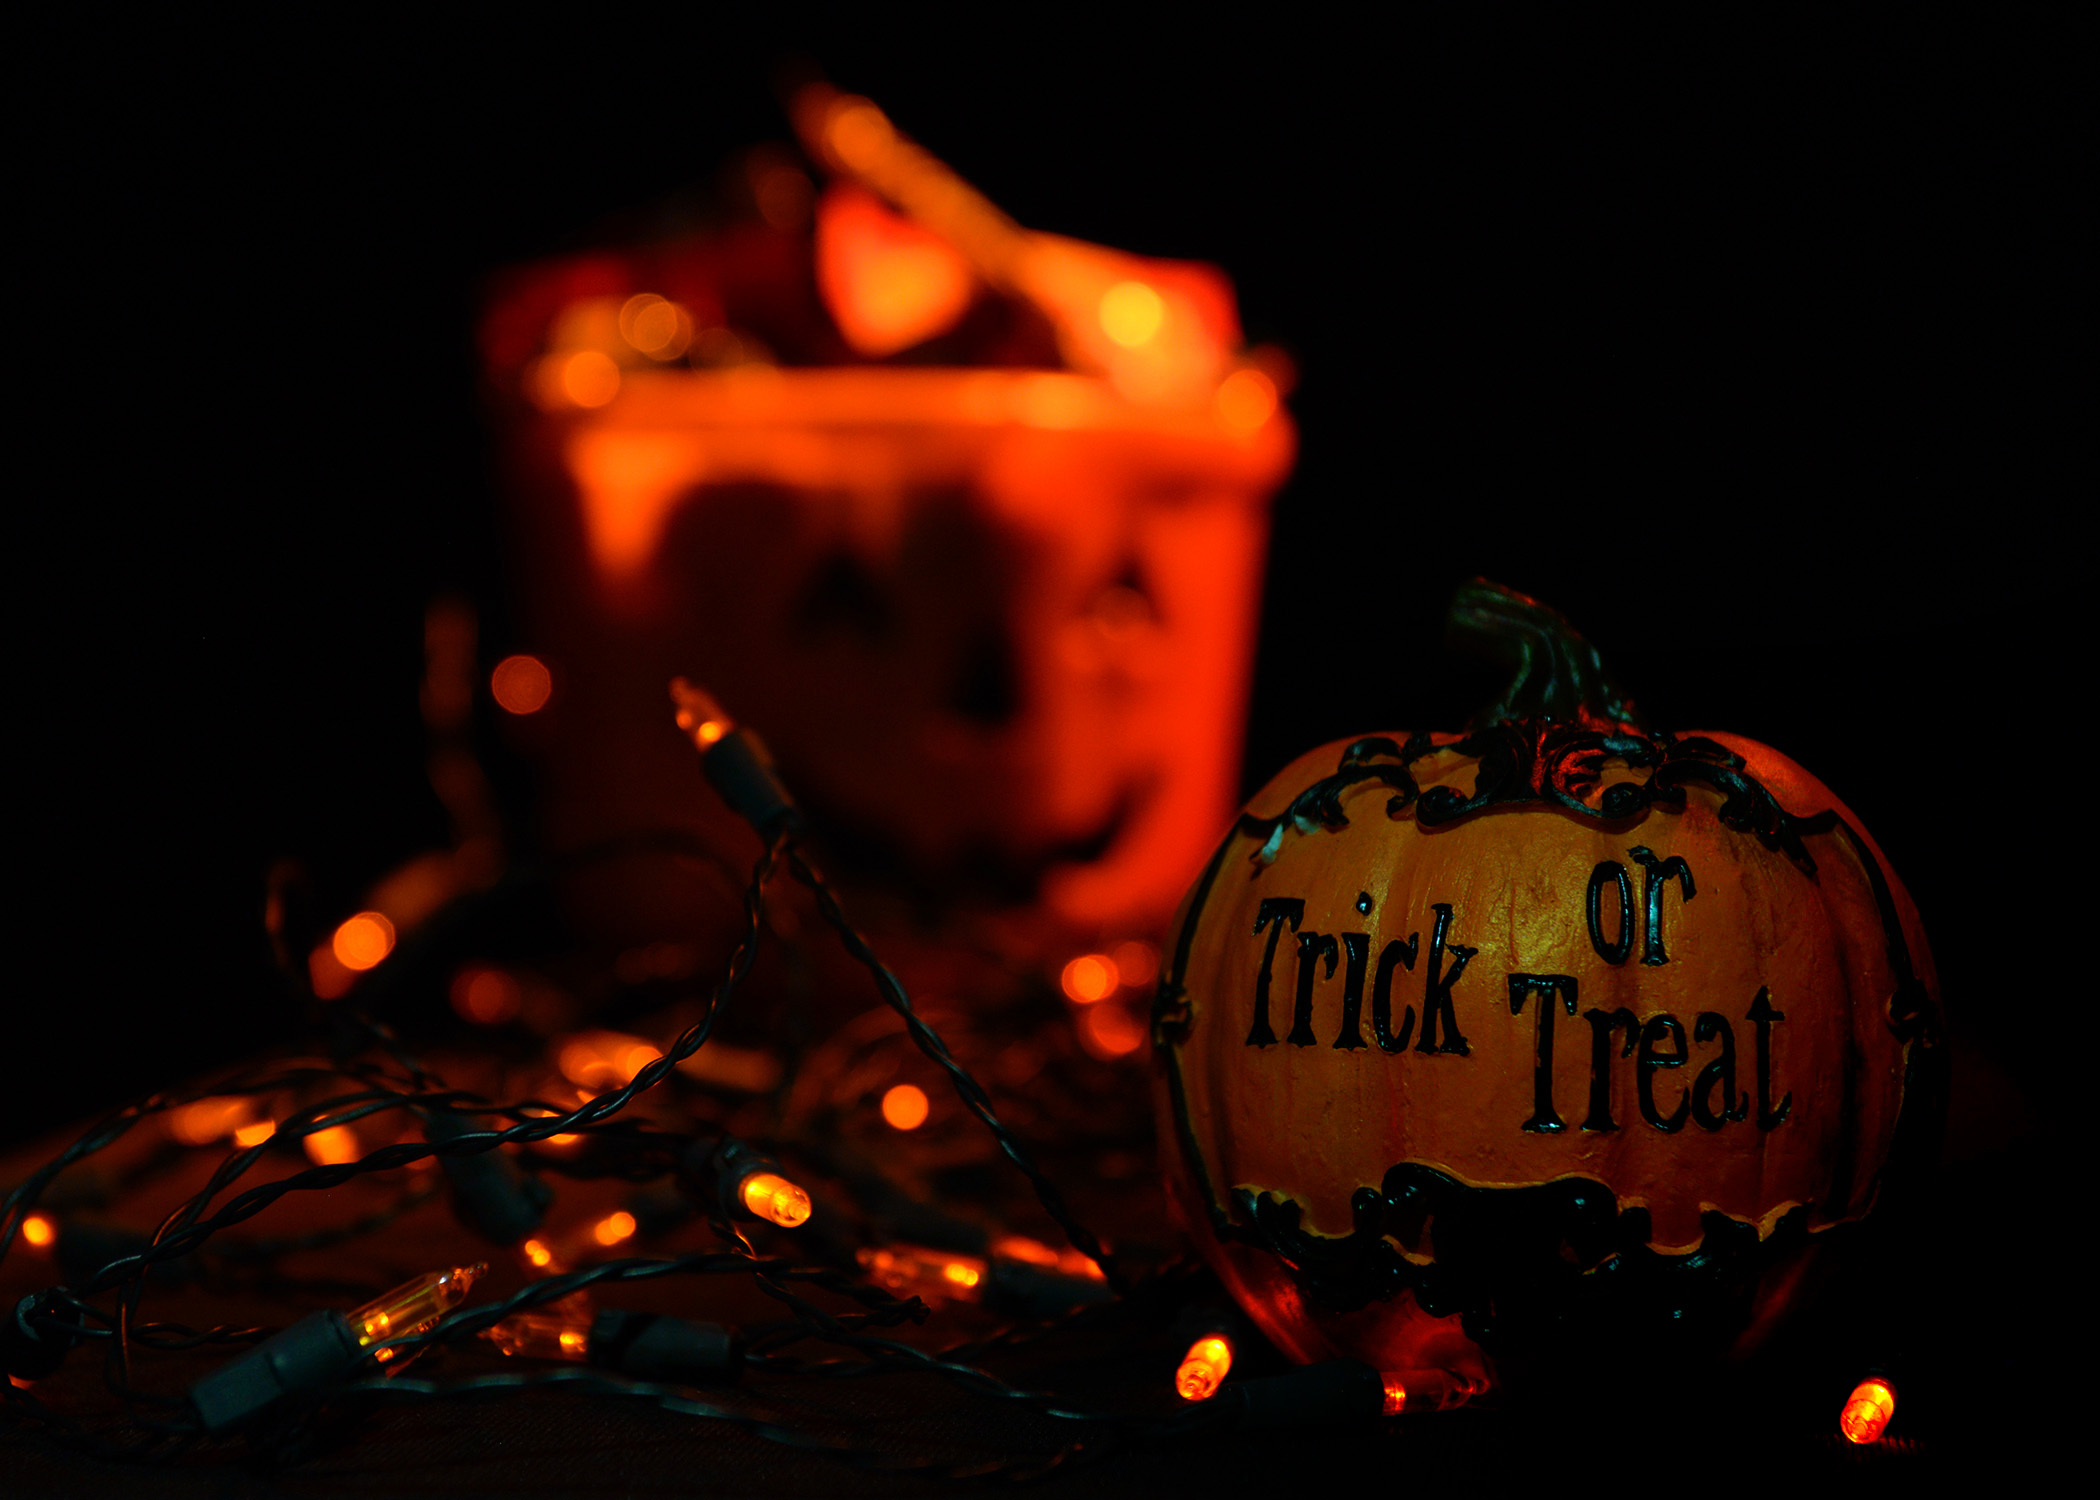 Halloween safety tips, Luke events available to families